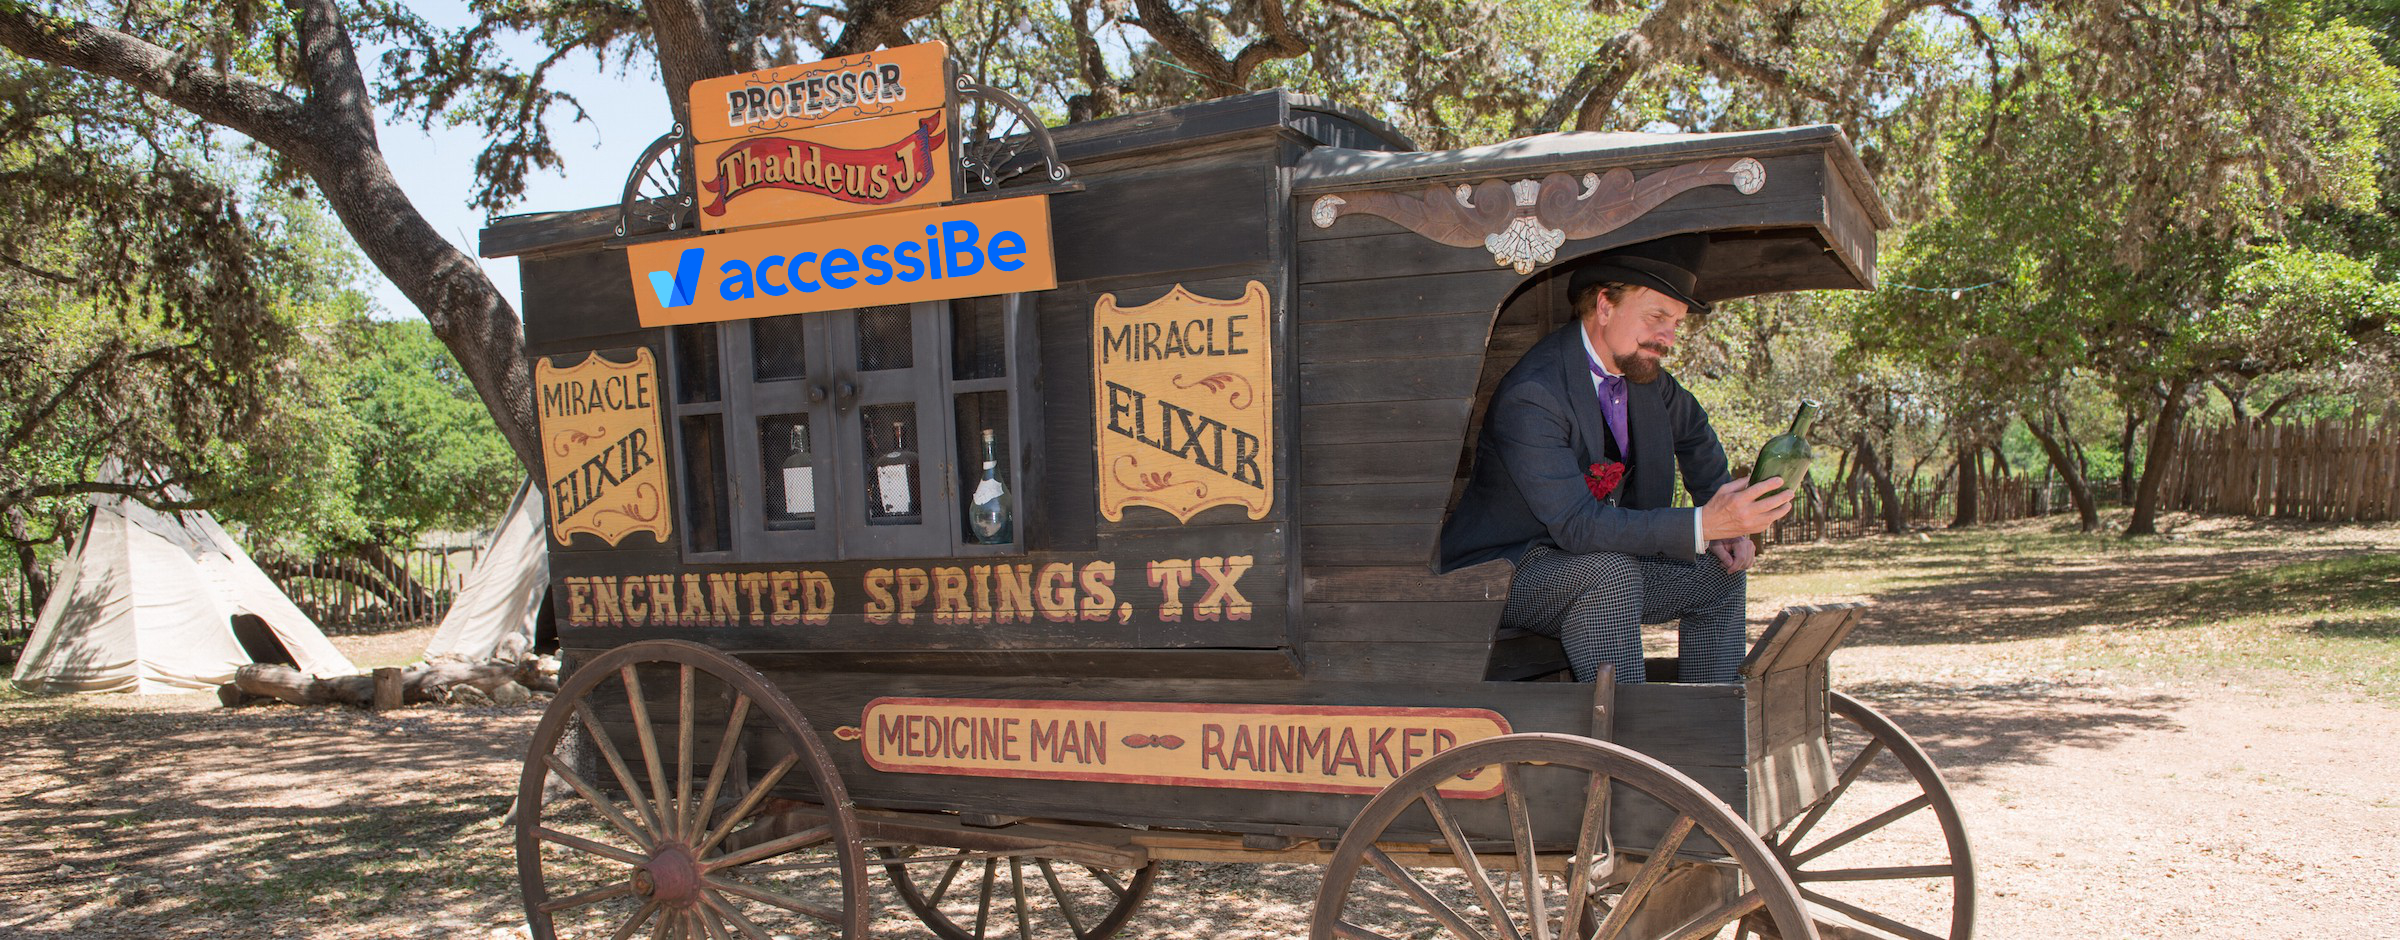 A snake oil salesman on his wagon where he sells snake oil that has the AccessiBe logo Photoshopped on the side of the wagon.